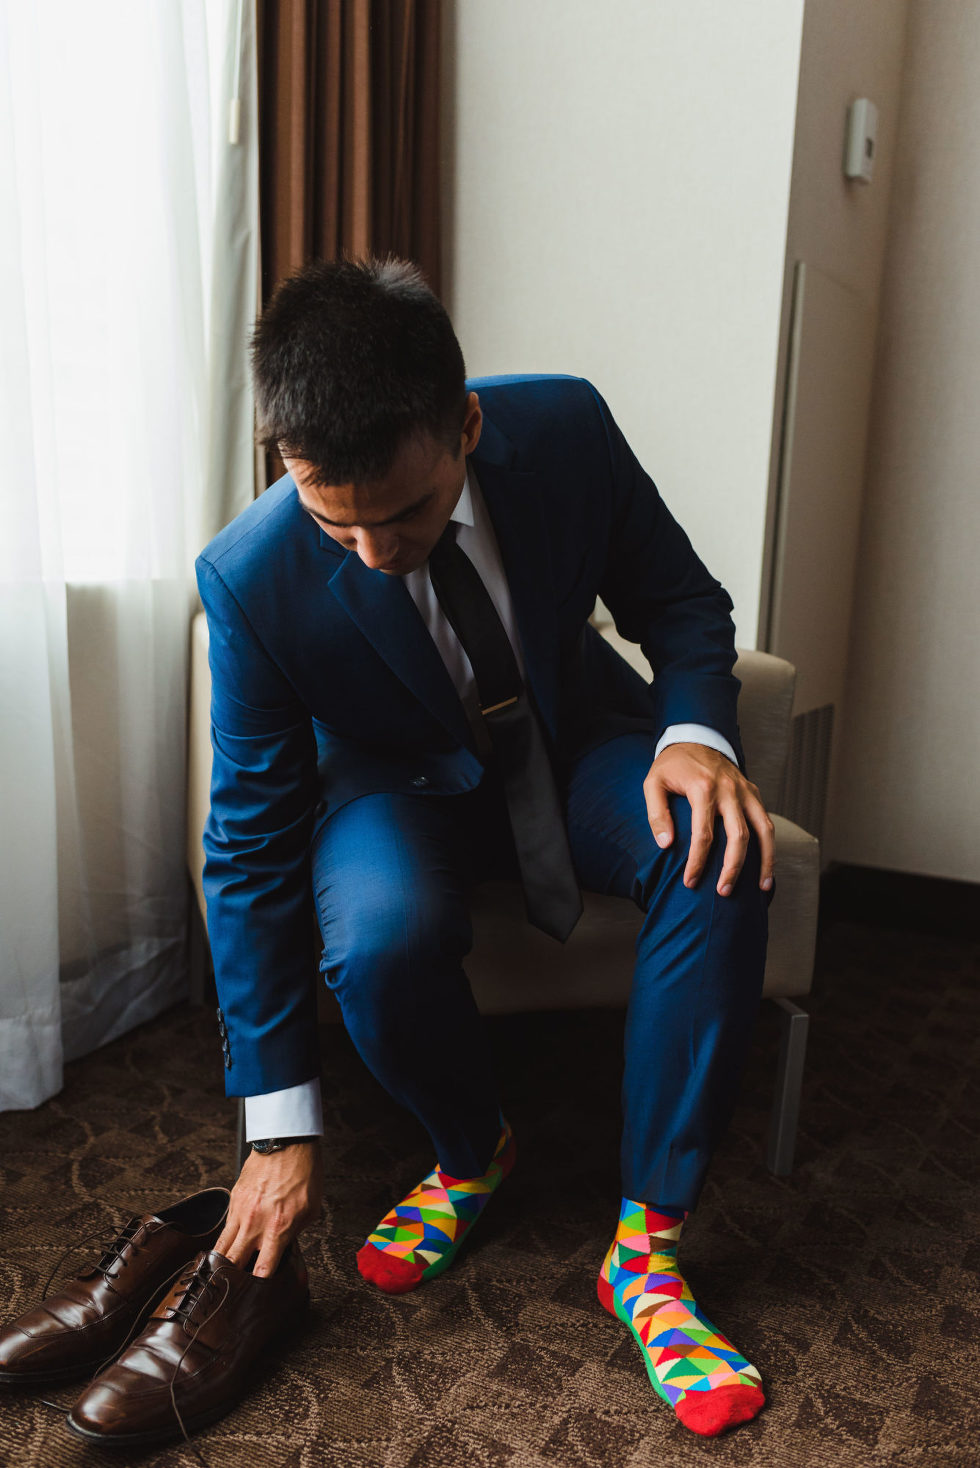 groom in blue suit and multi-coloured socks sitting in a chair about to put on brown dress shoes Toronto brewery wedding photography